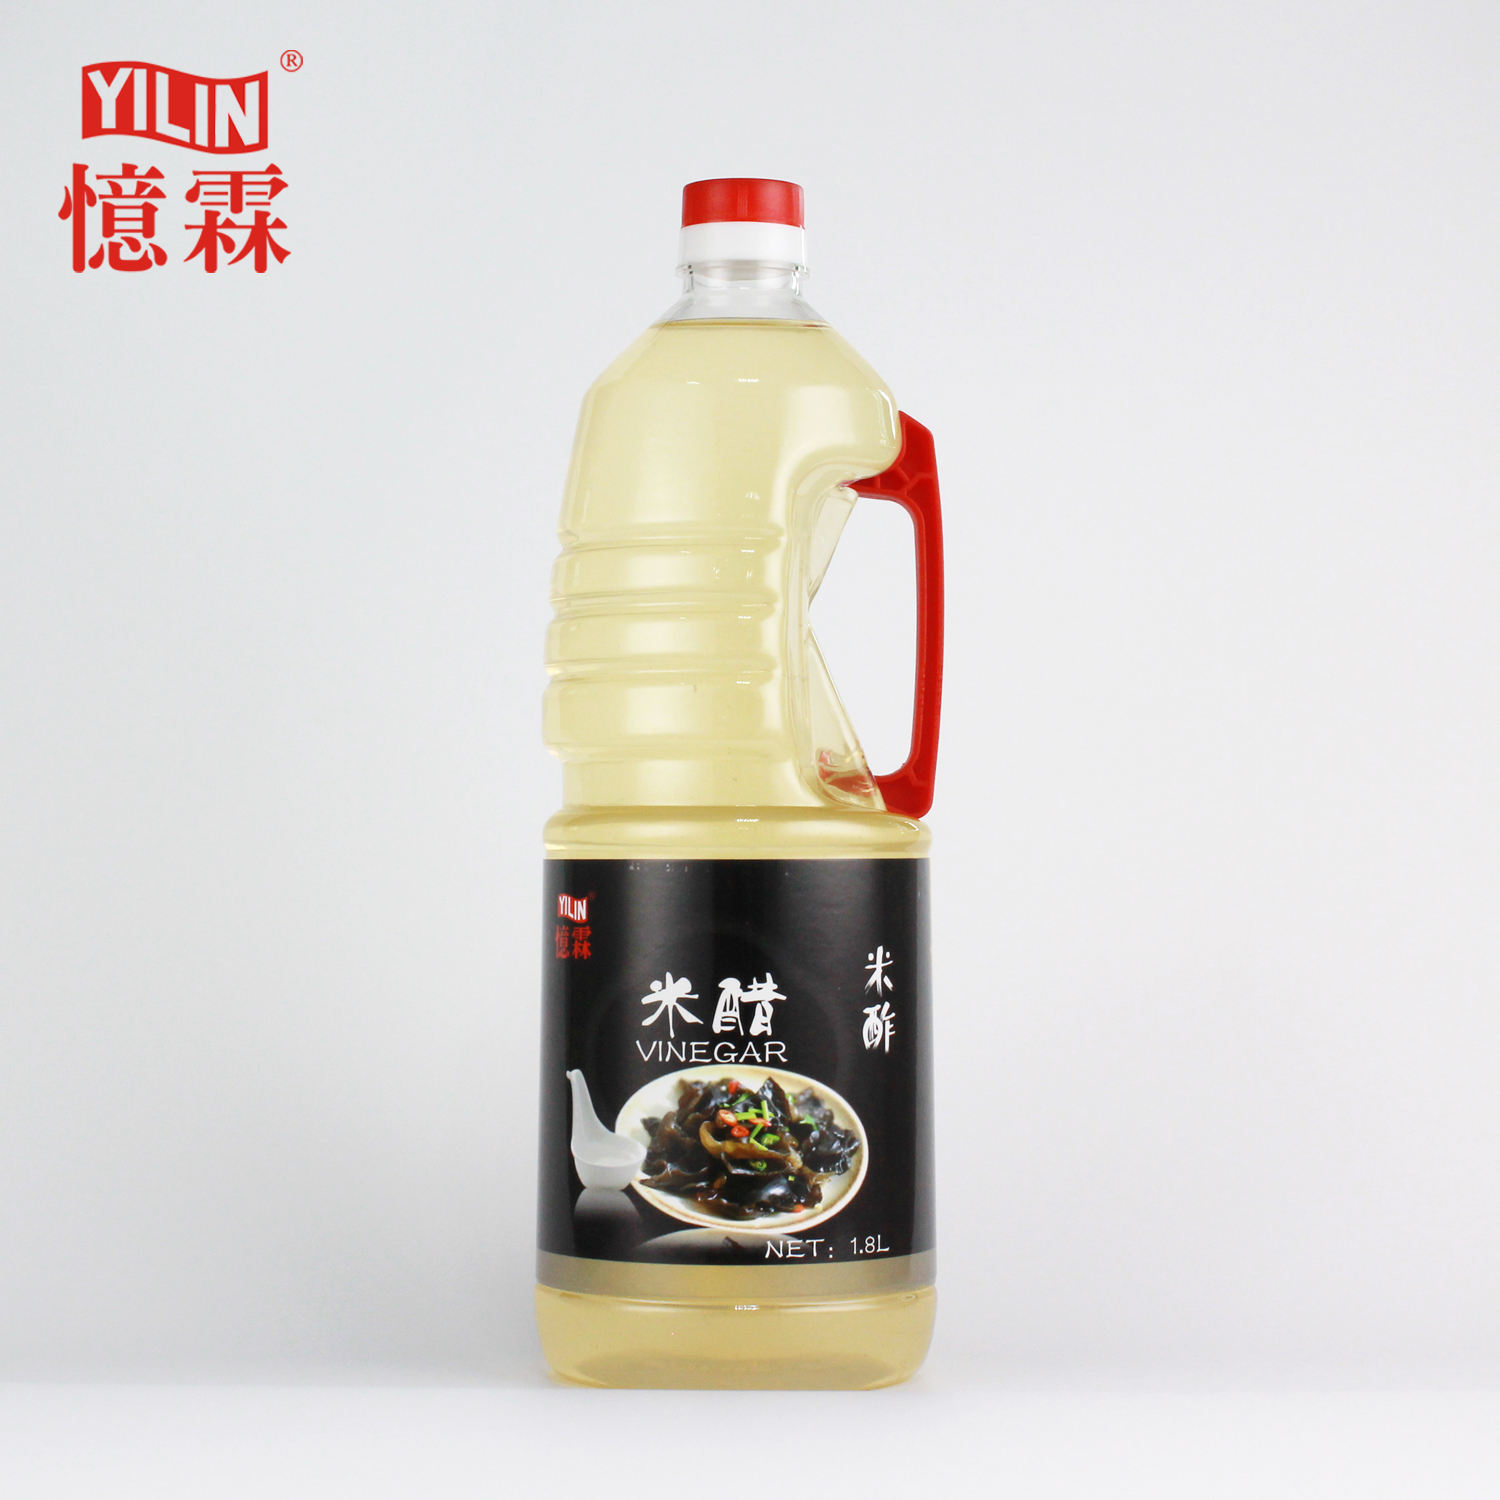 1.8L high quality natural fermented white rice vinegar